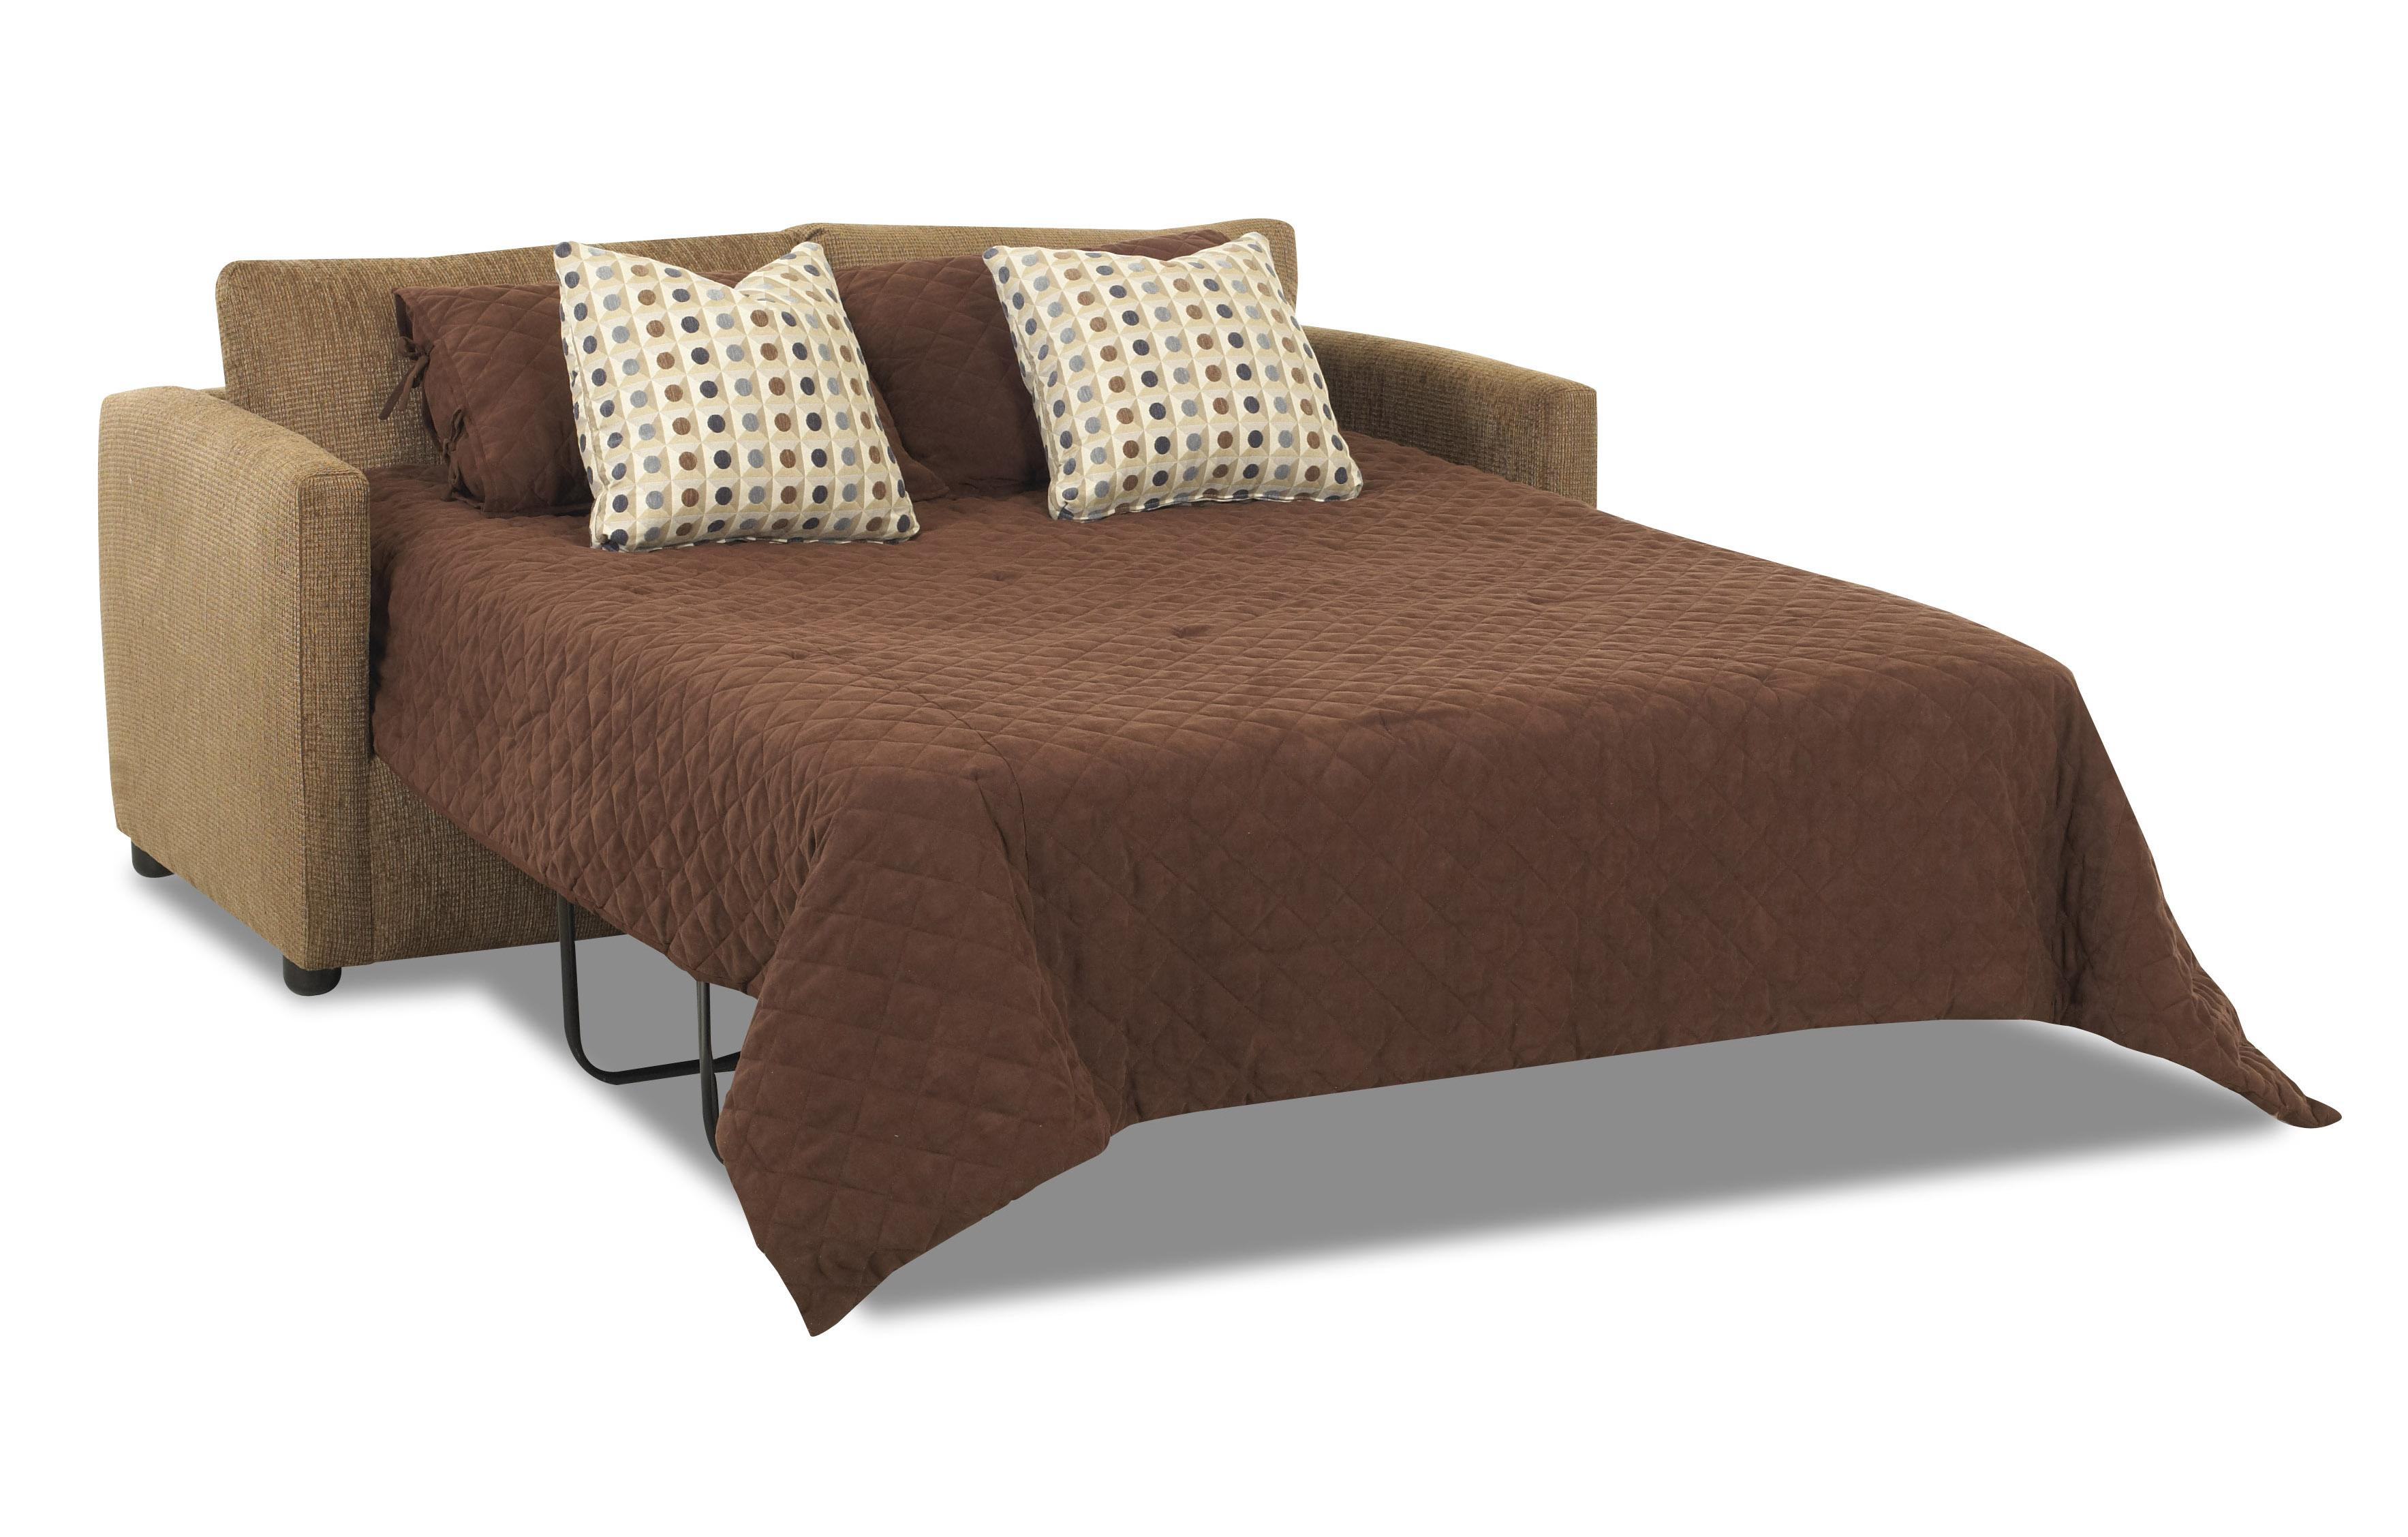 Casual Queen Sleeper Sofa by Klaussner